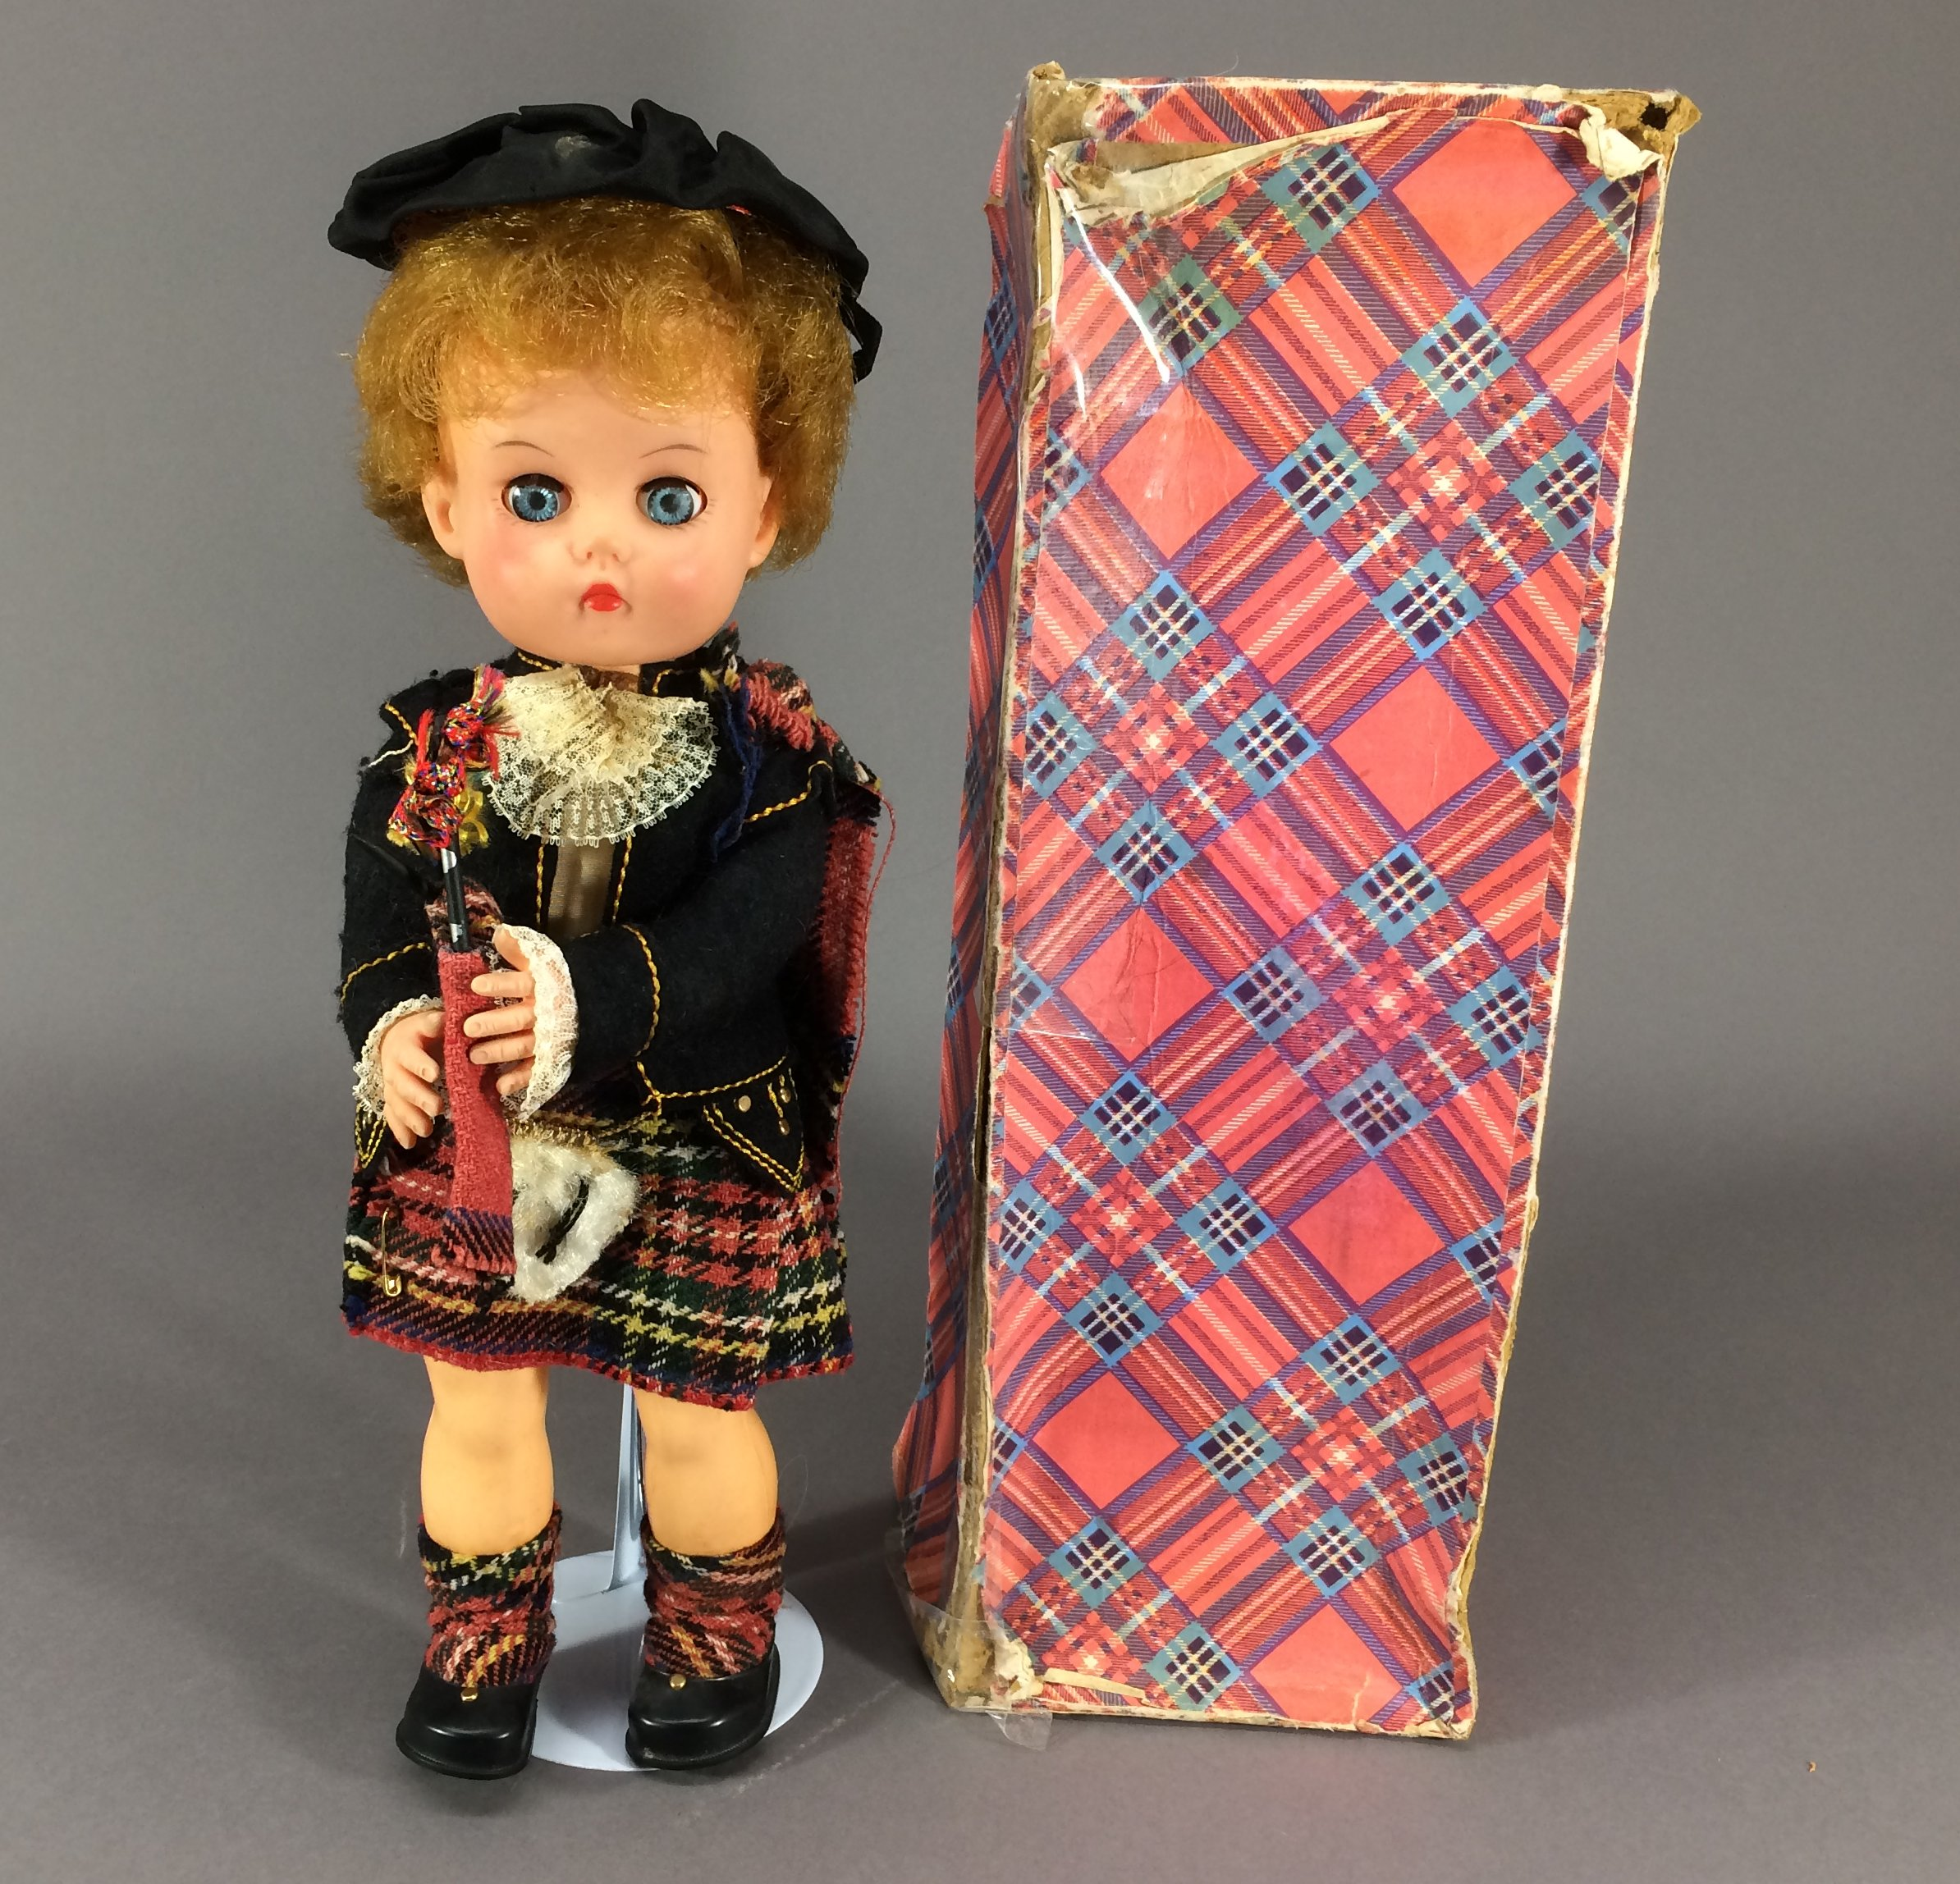 Pedigree Highland Lassie doll